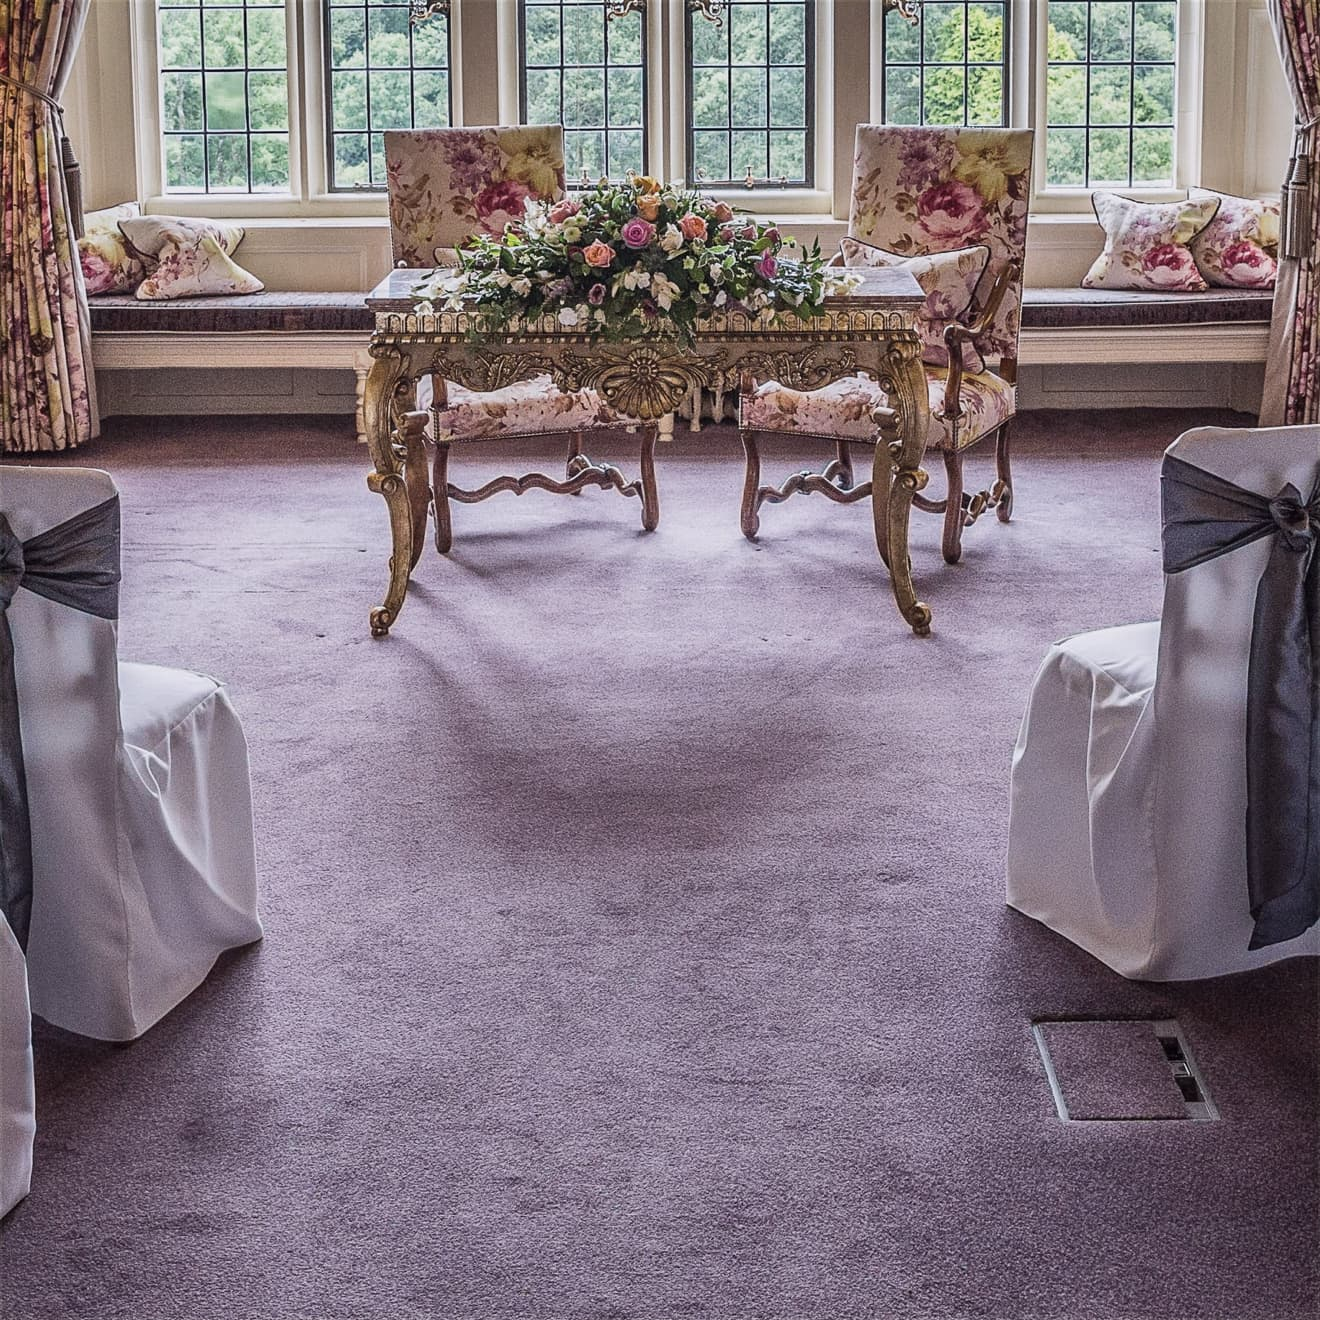 News Dream Castle Wedding Venue Bovey Castle 01